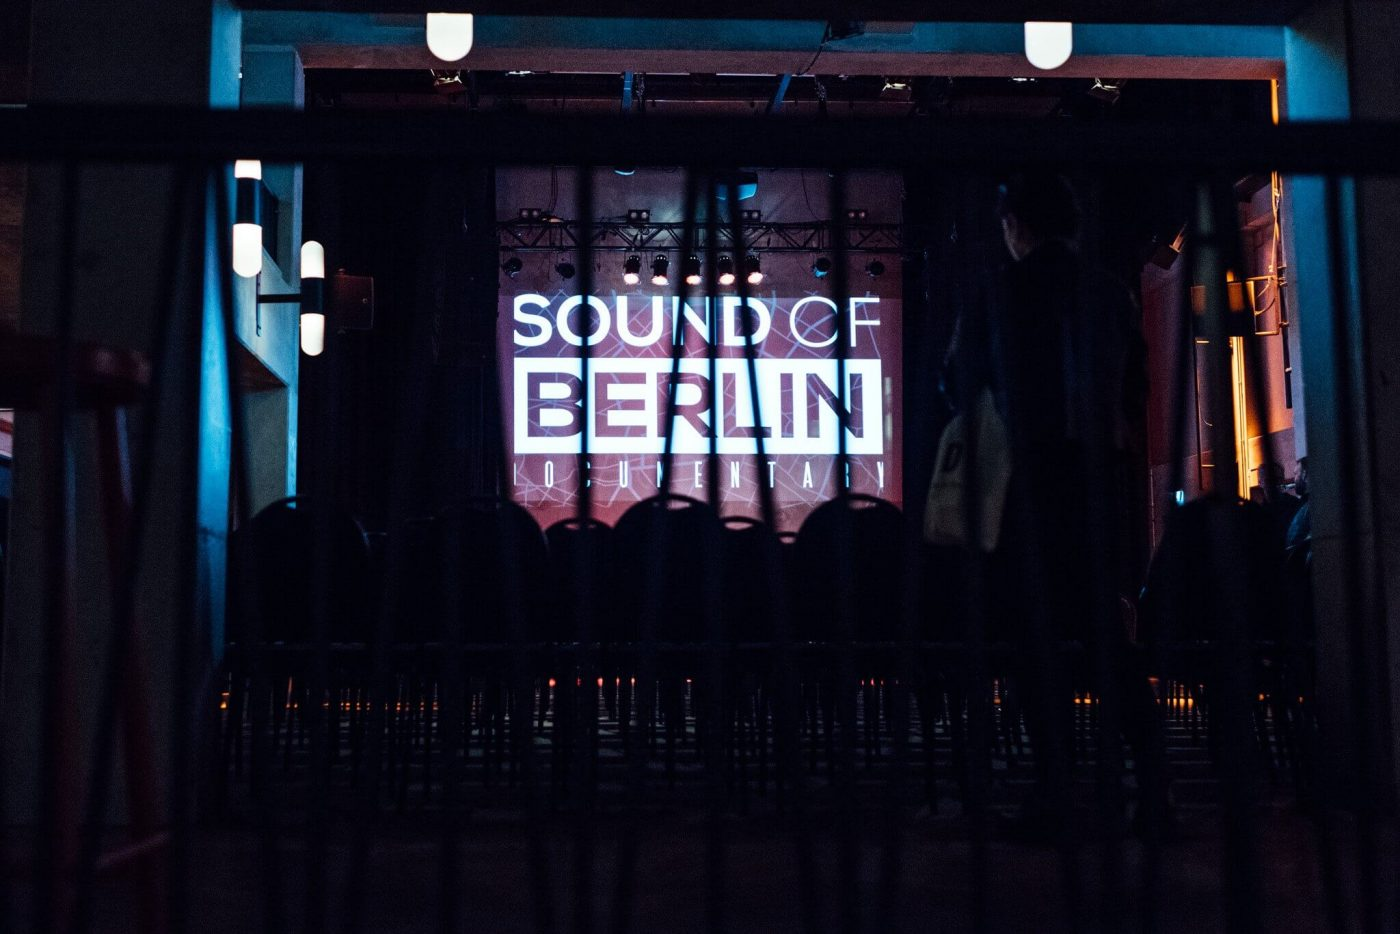 the sound of berlin documental